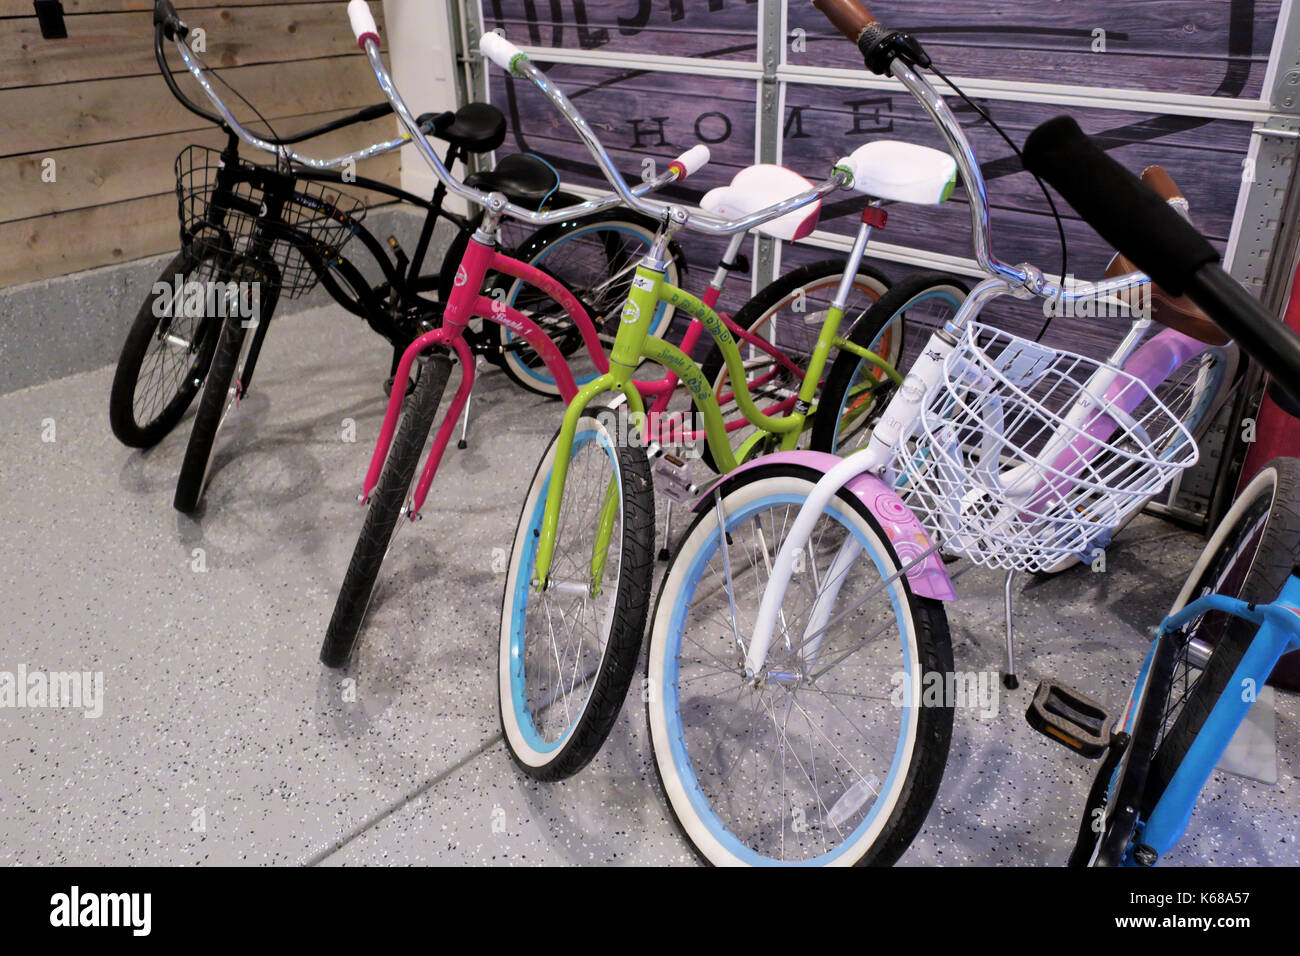 A row of bicycles parked in a garage. - Stock Image